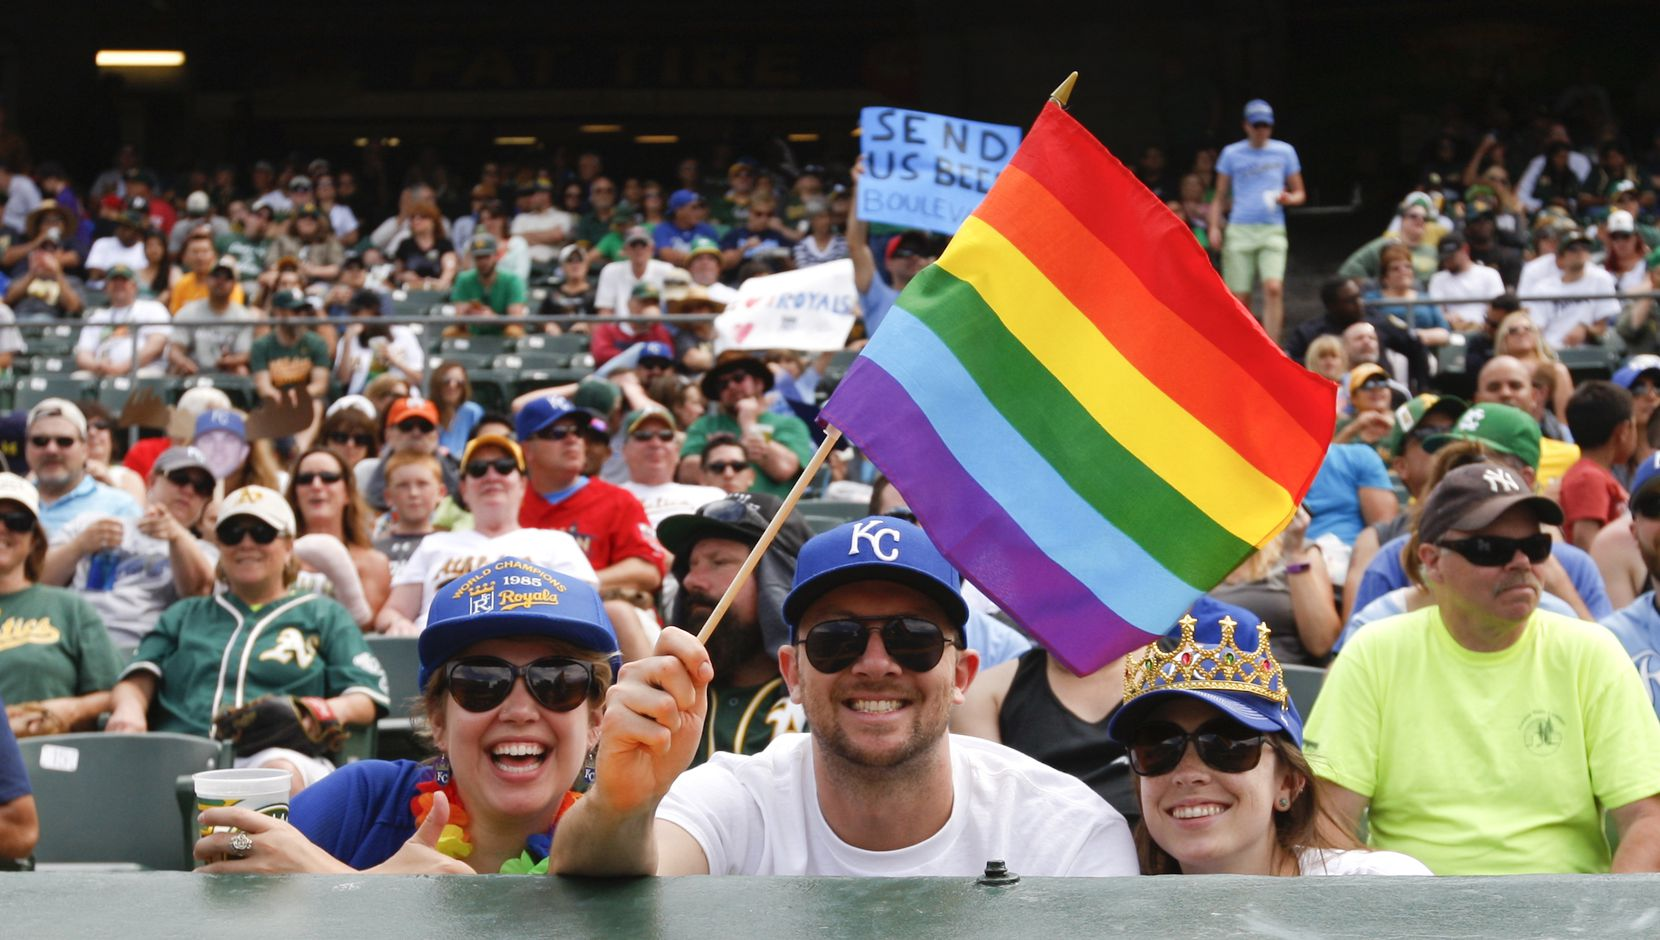 Fans celebrate Pride Weekend during the game between the Oakland Athletics and the Kansas City Royals at O.co Coliseum on June 27, 2015 in Oakland, California. The Royals defeated the Athletics 3-2.